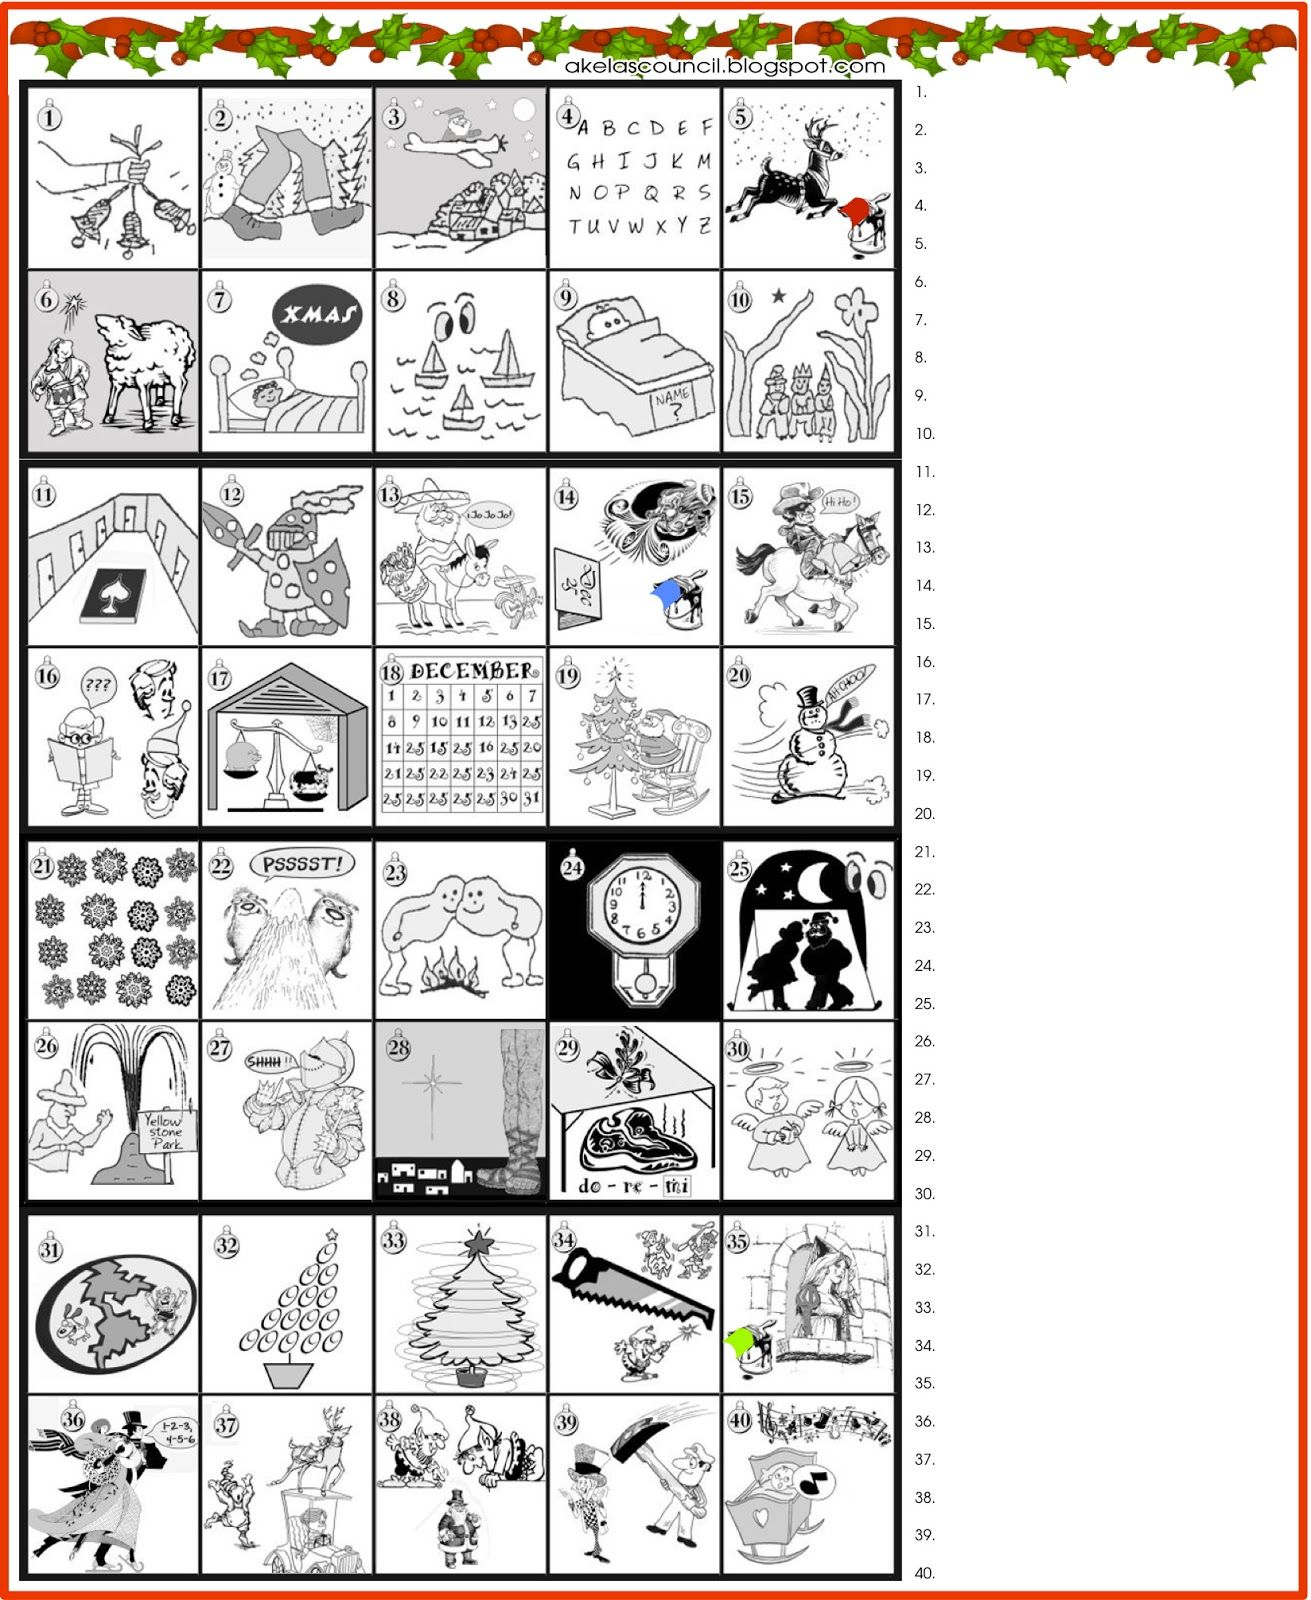 Printable Guess The Christmas Songs Or Carols Word